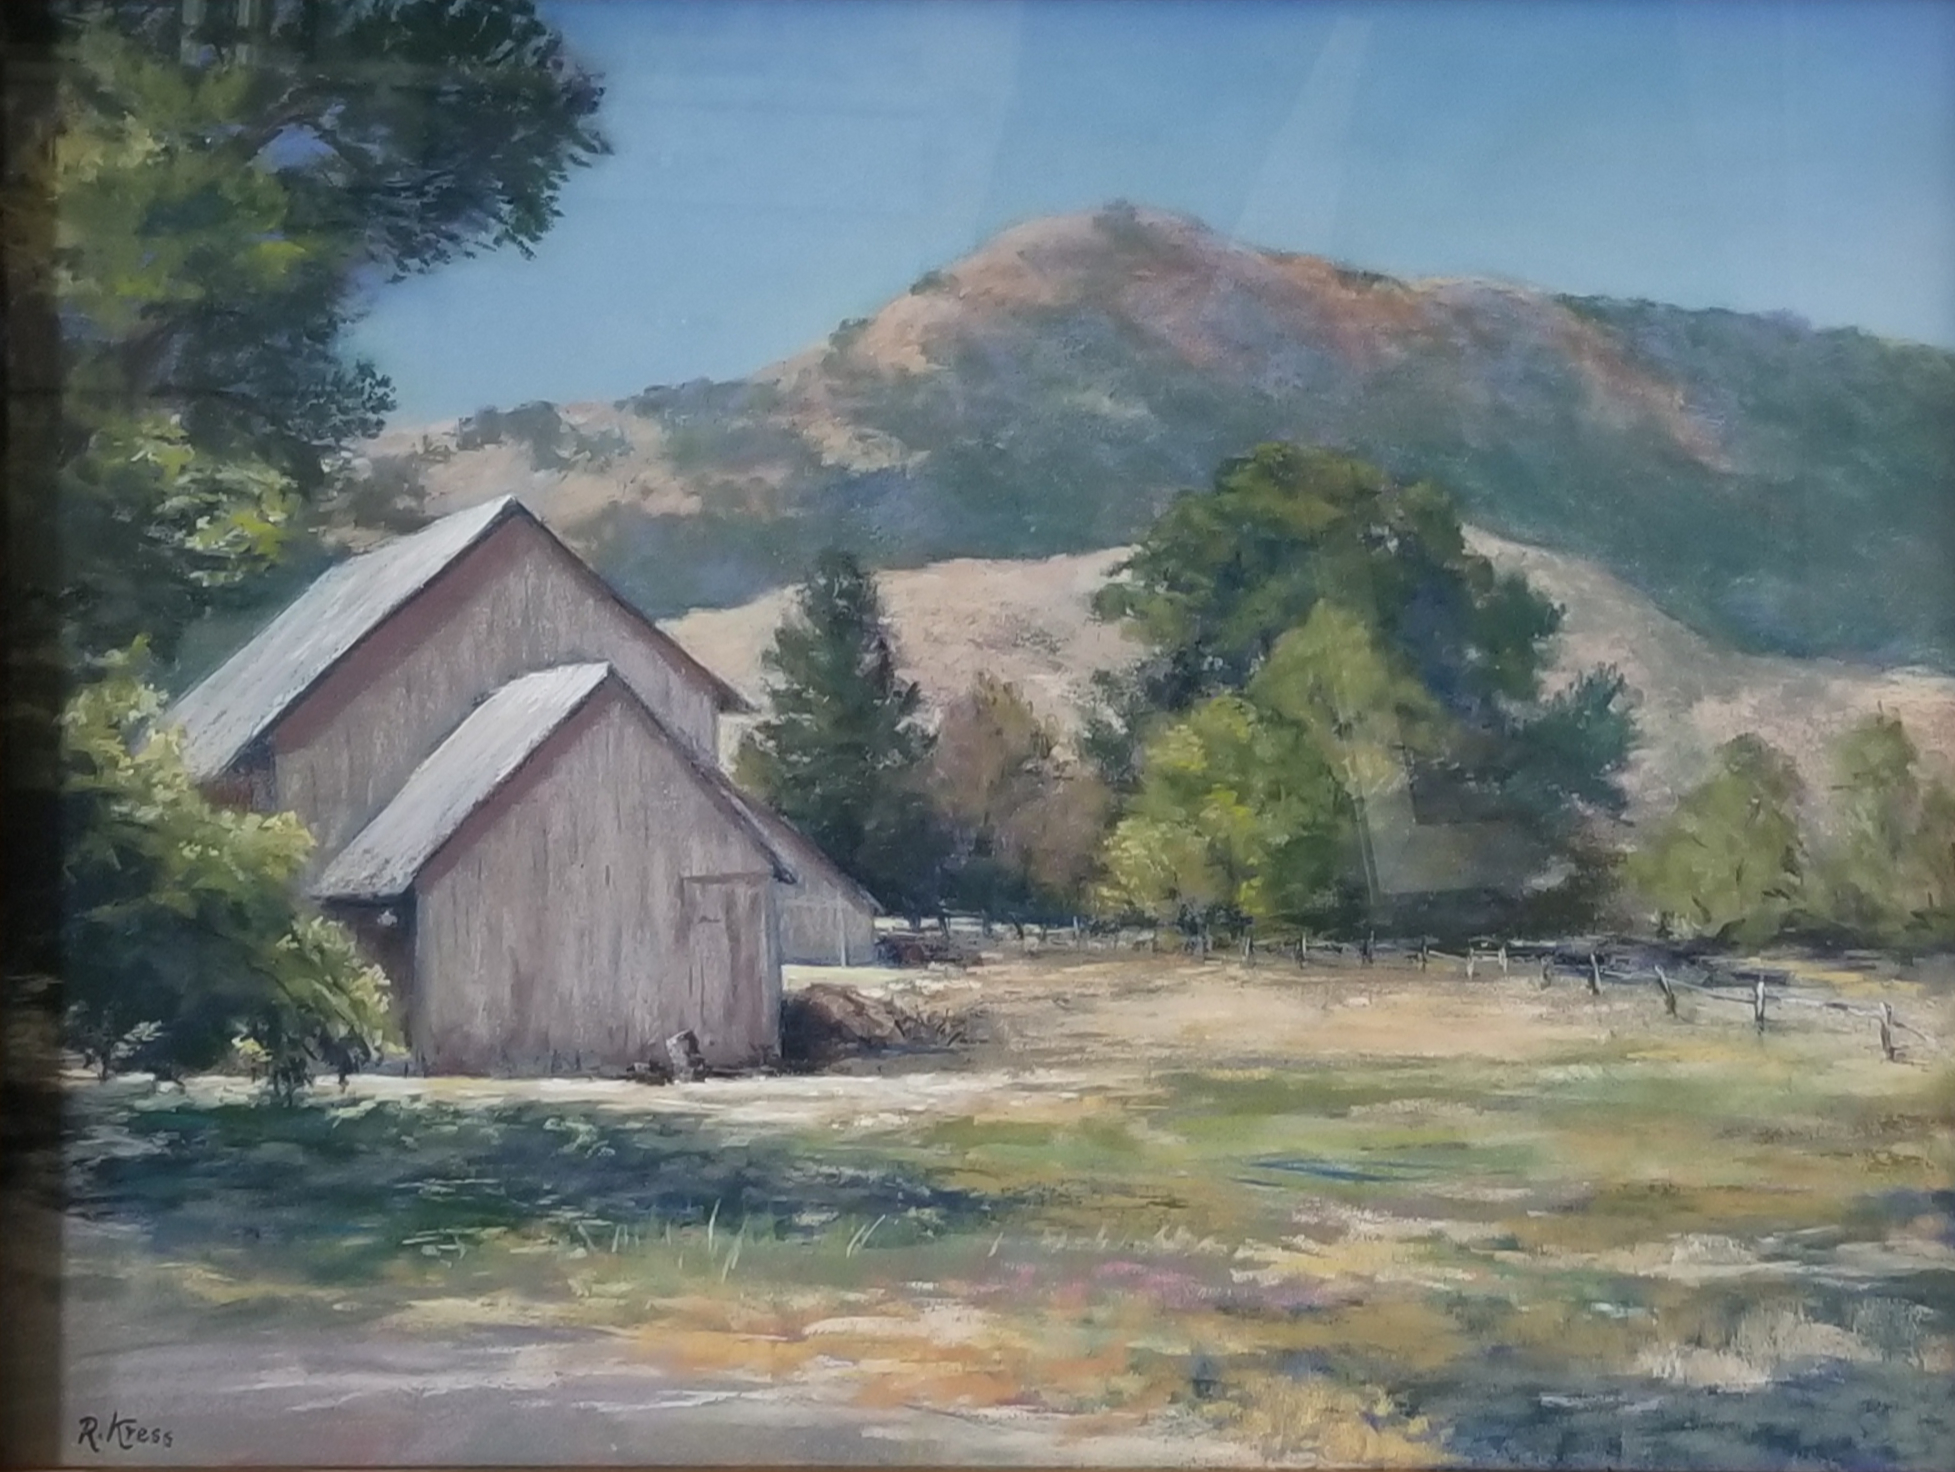 On the Ranch, Roswitha Kress, 23.5 x 29.5, pastel on board, $500